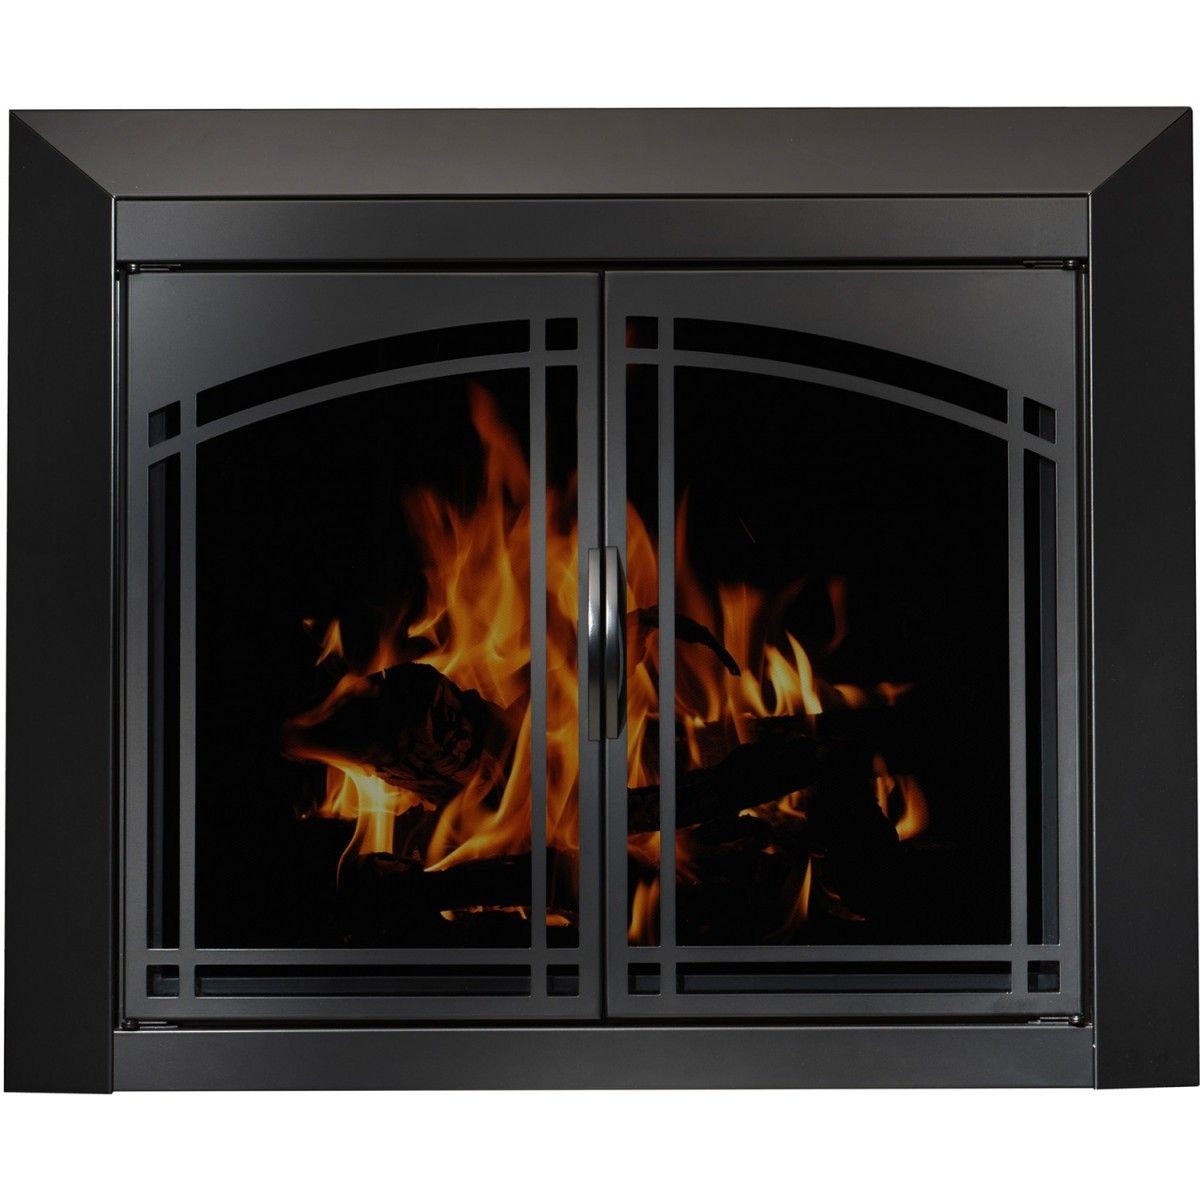 The Manassa Masonry Fireplace Door Beautiful Arched Plate Design On A Steel Welded Durable Frame Fireplace Doors Fireplace Glass Doors Masonry Fireplace